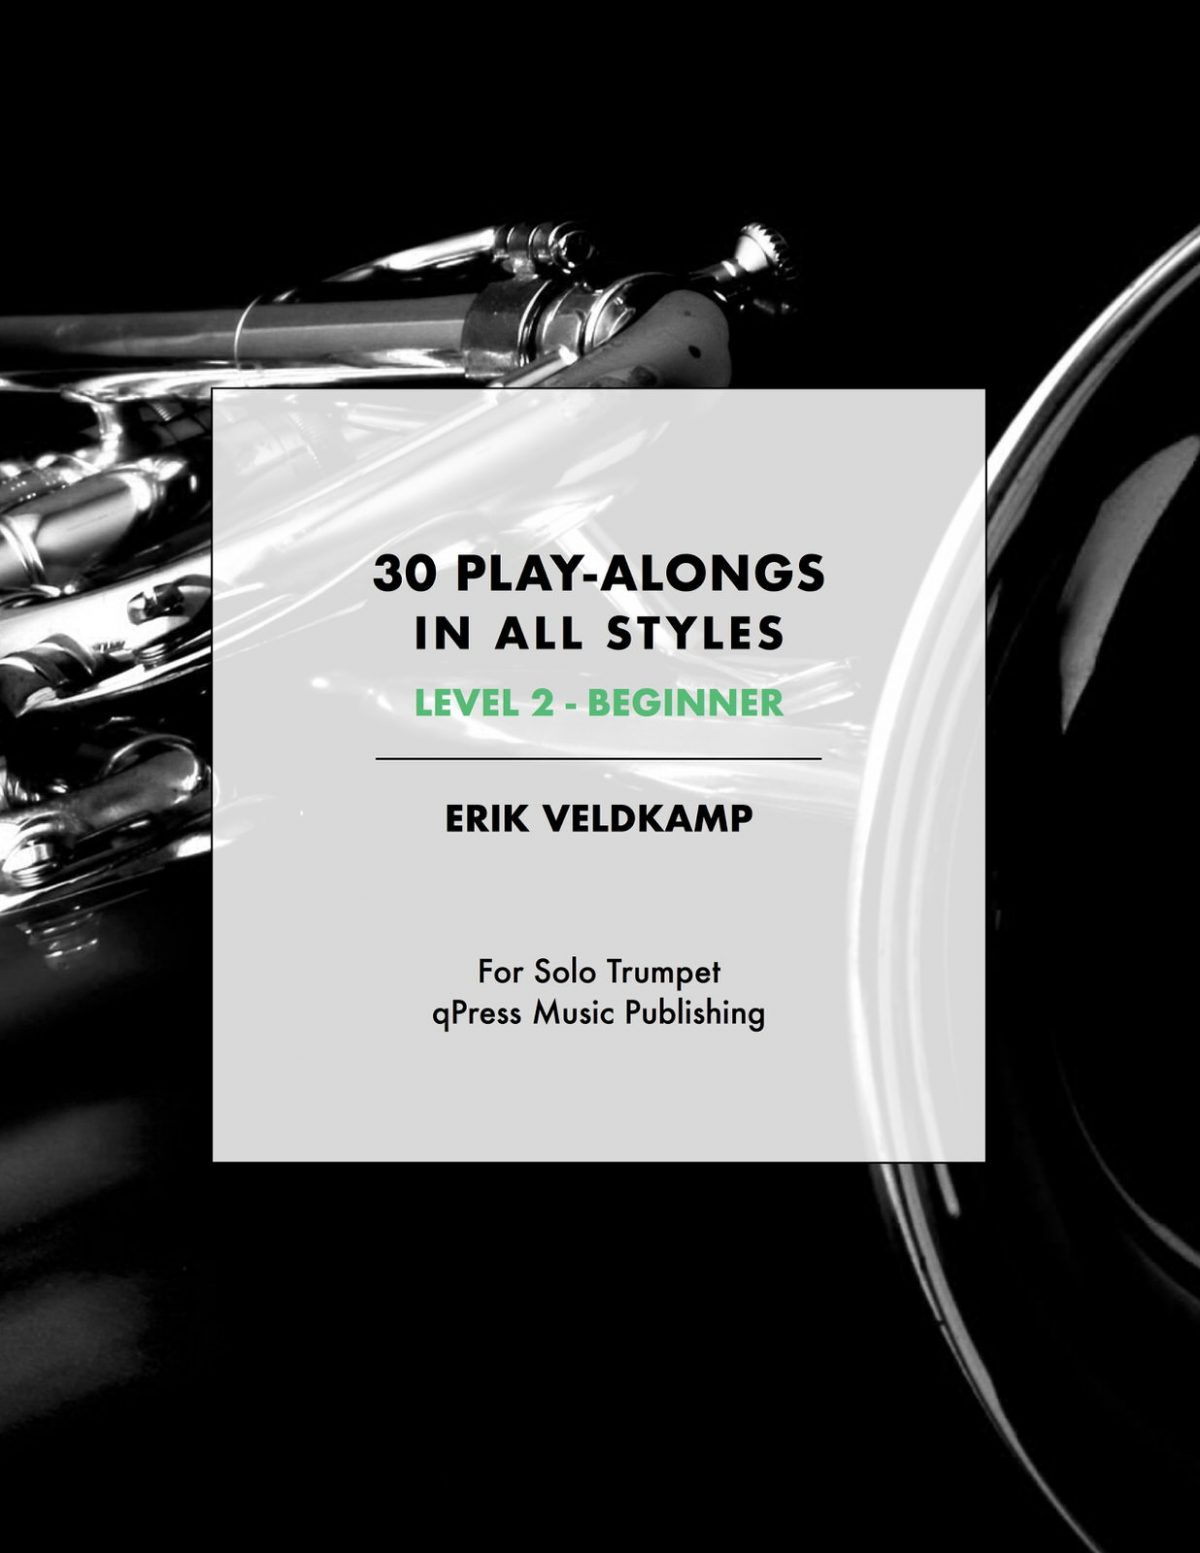 Veldkamp, 30 Play-Alongs in All Styles Level 2 (Beginner)-p01